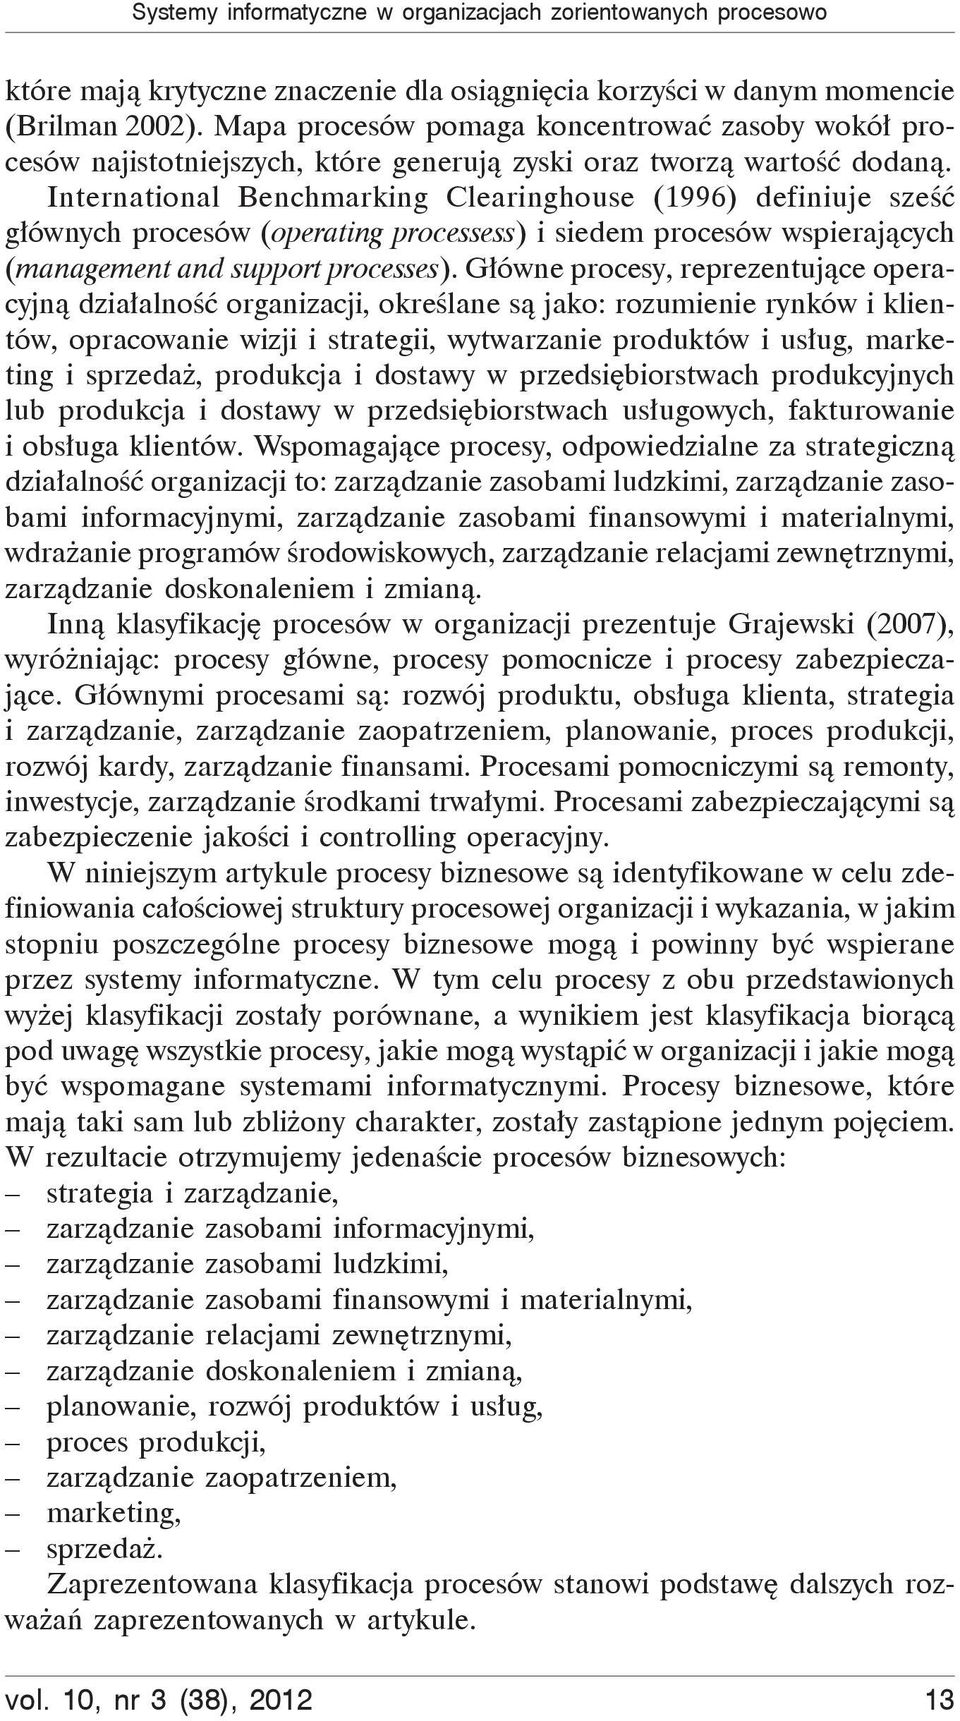 International Benchmarking Clearinghouse (1996) definiuje sze g ównych procesów (operating processess) i siedem procesów wspieraj cych (management and support processes).